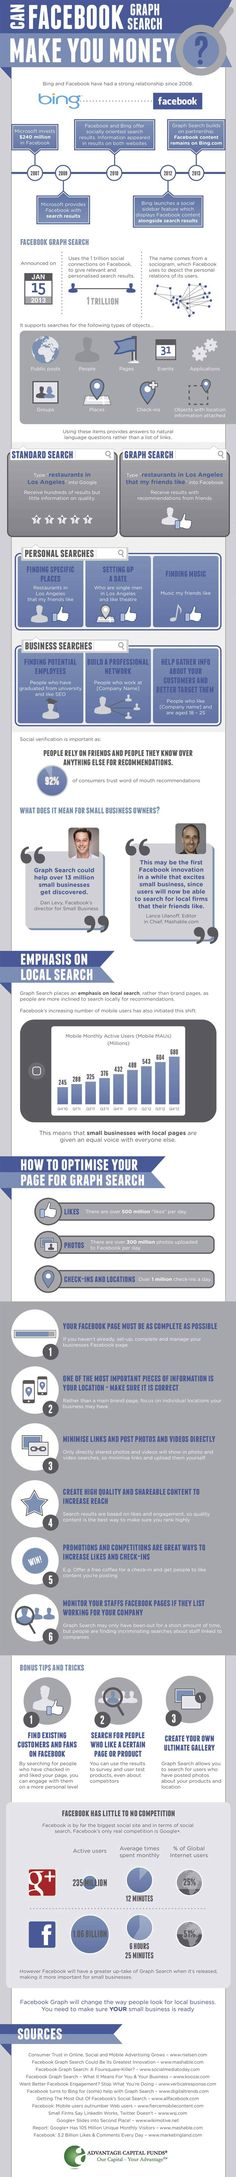 What Is The Relationship Between Bing And Facebook Graph Search And How Can It Help You?